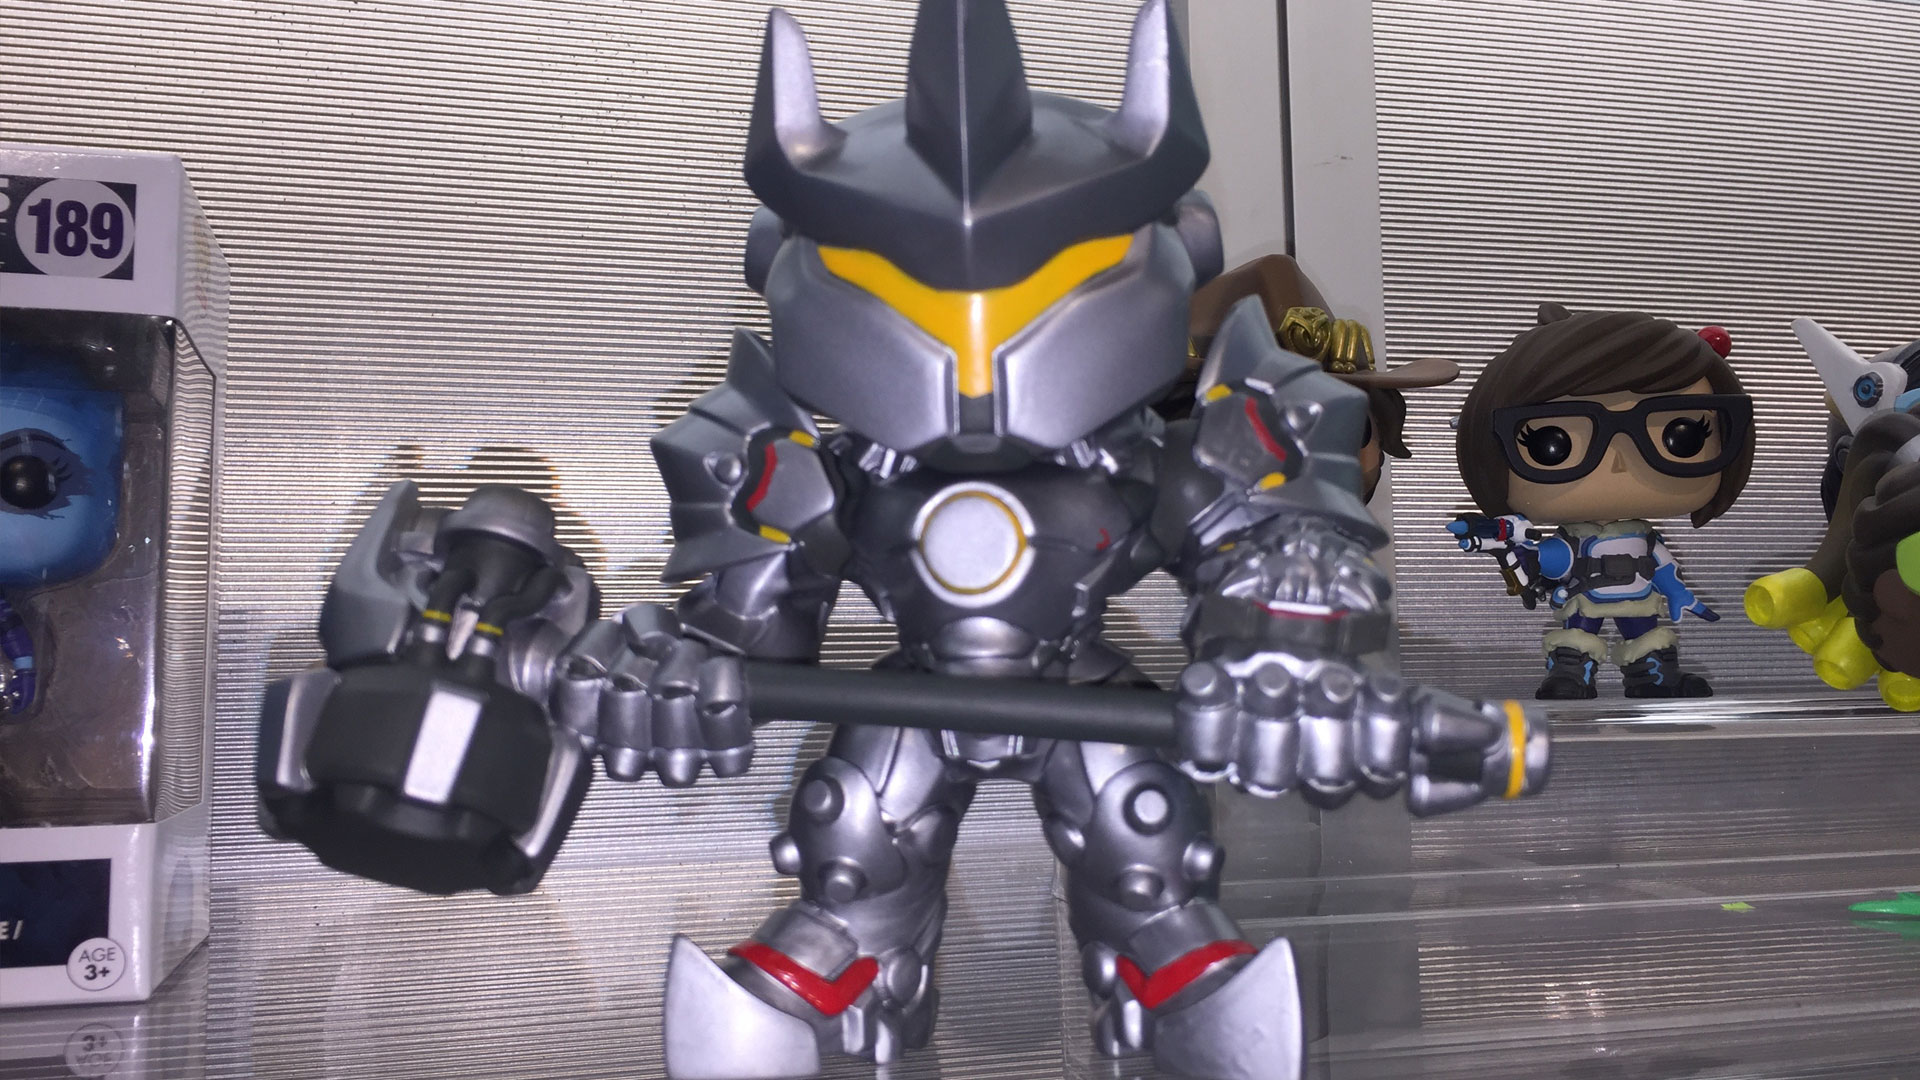 Funko Pop Overwatch Reinnhardt Vinyl Figures at Toy Fair 2017